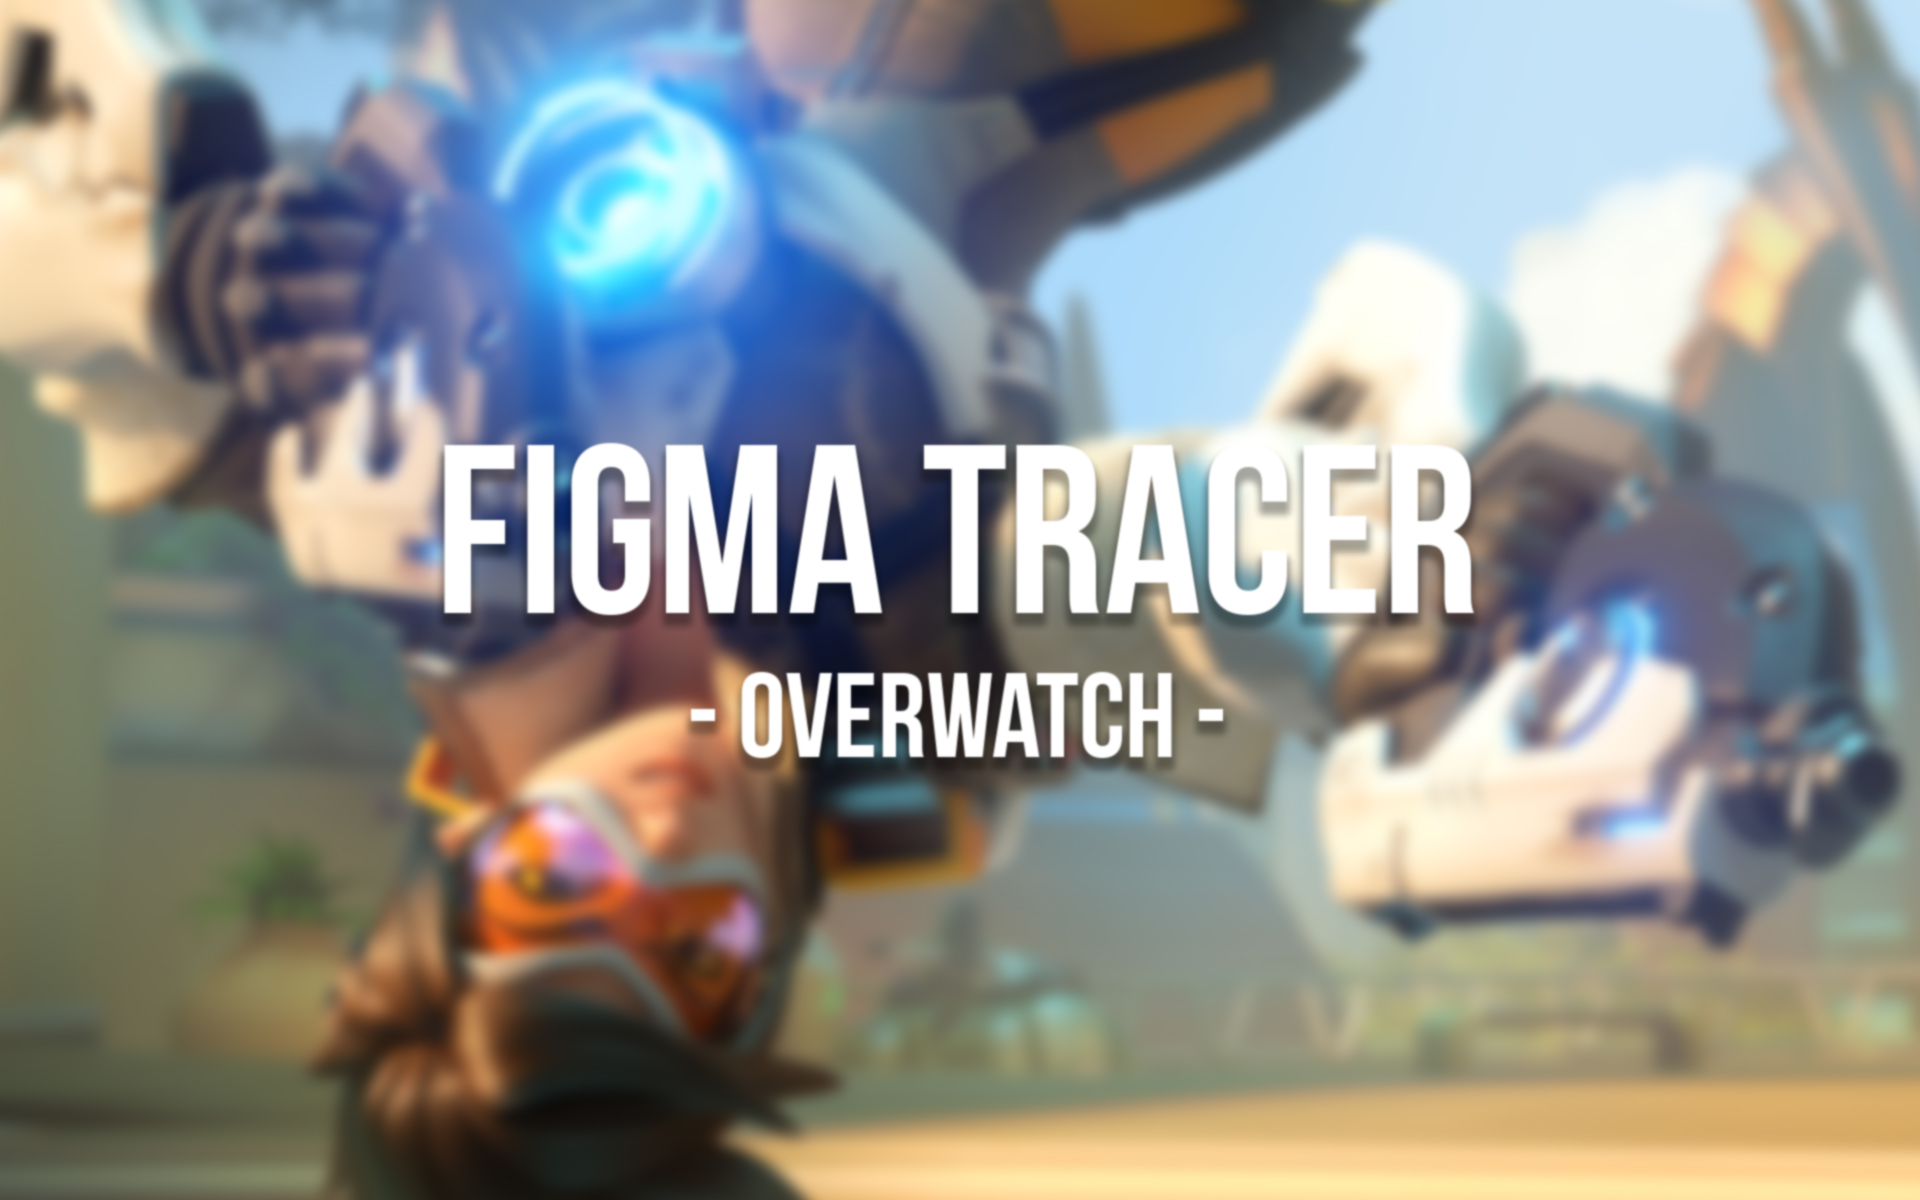 tracer-front.jpg